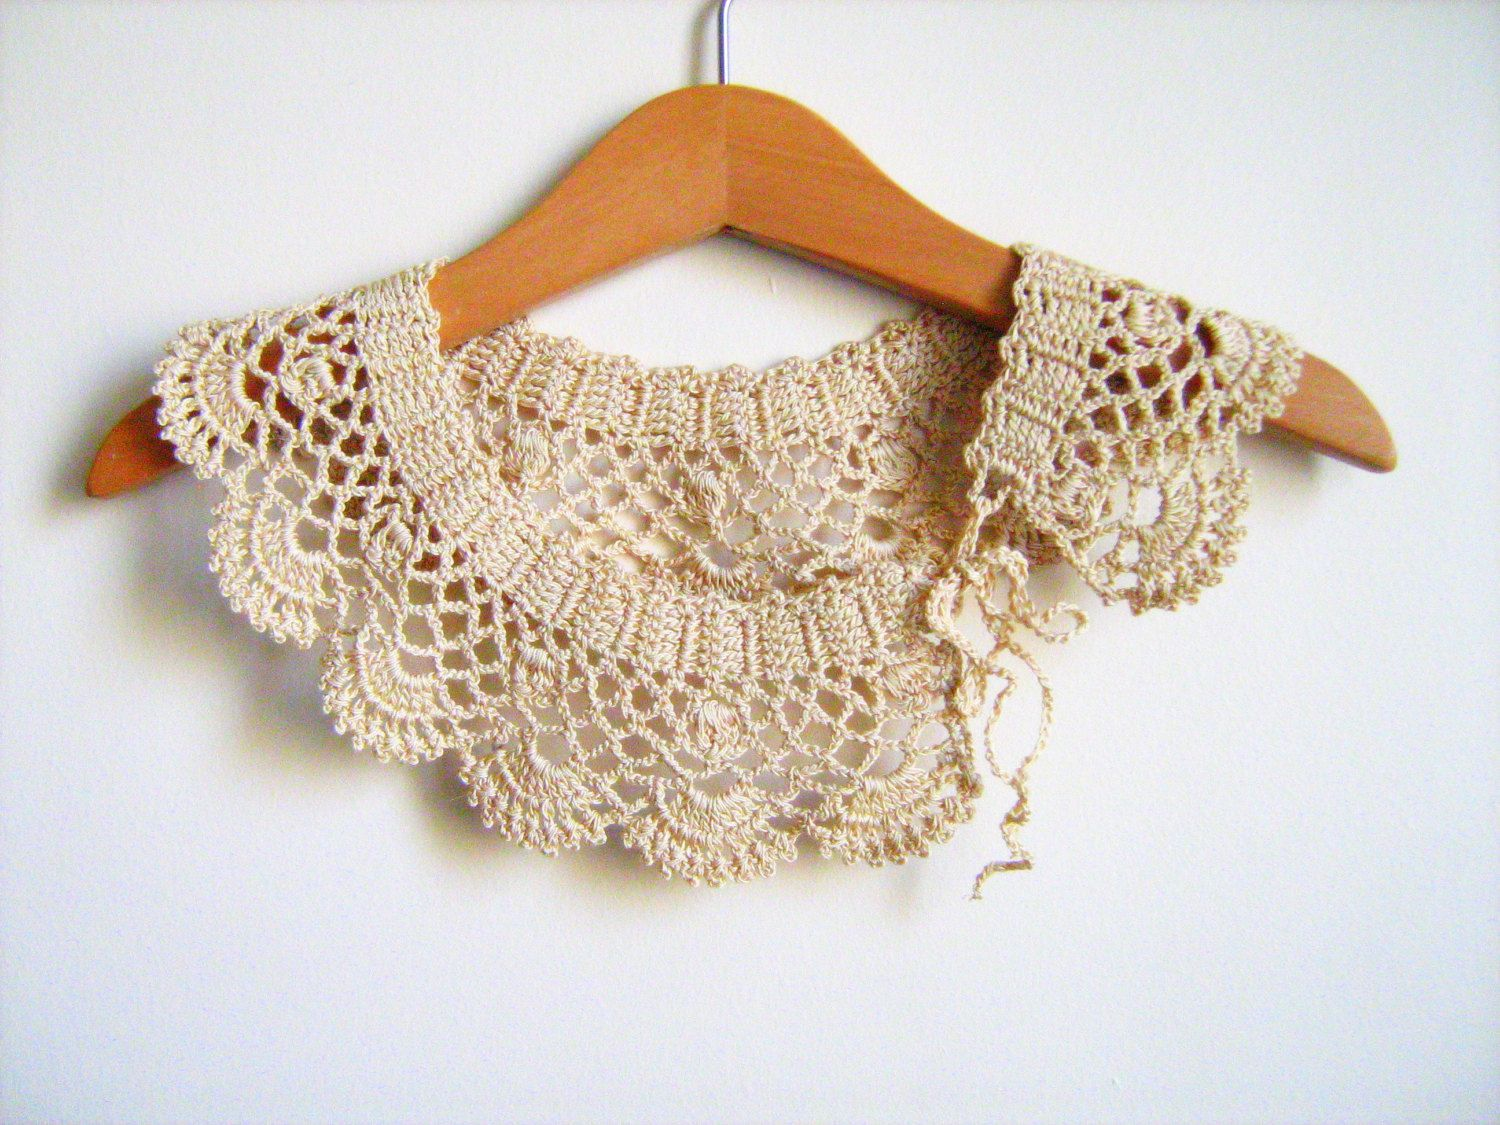 Collar necklace handmade crochet peter pan collar necklace beige collar necklace handmade crochet peter pan collar necklace beige cotton collar ready to bankloansurffo Image collections